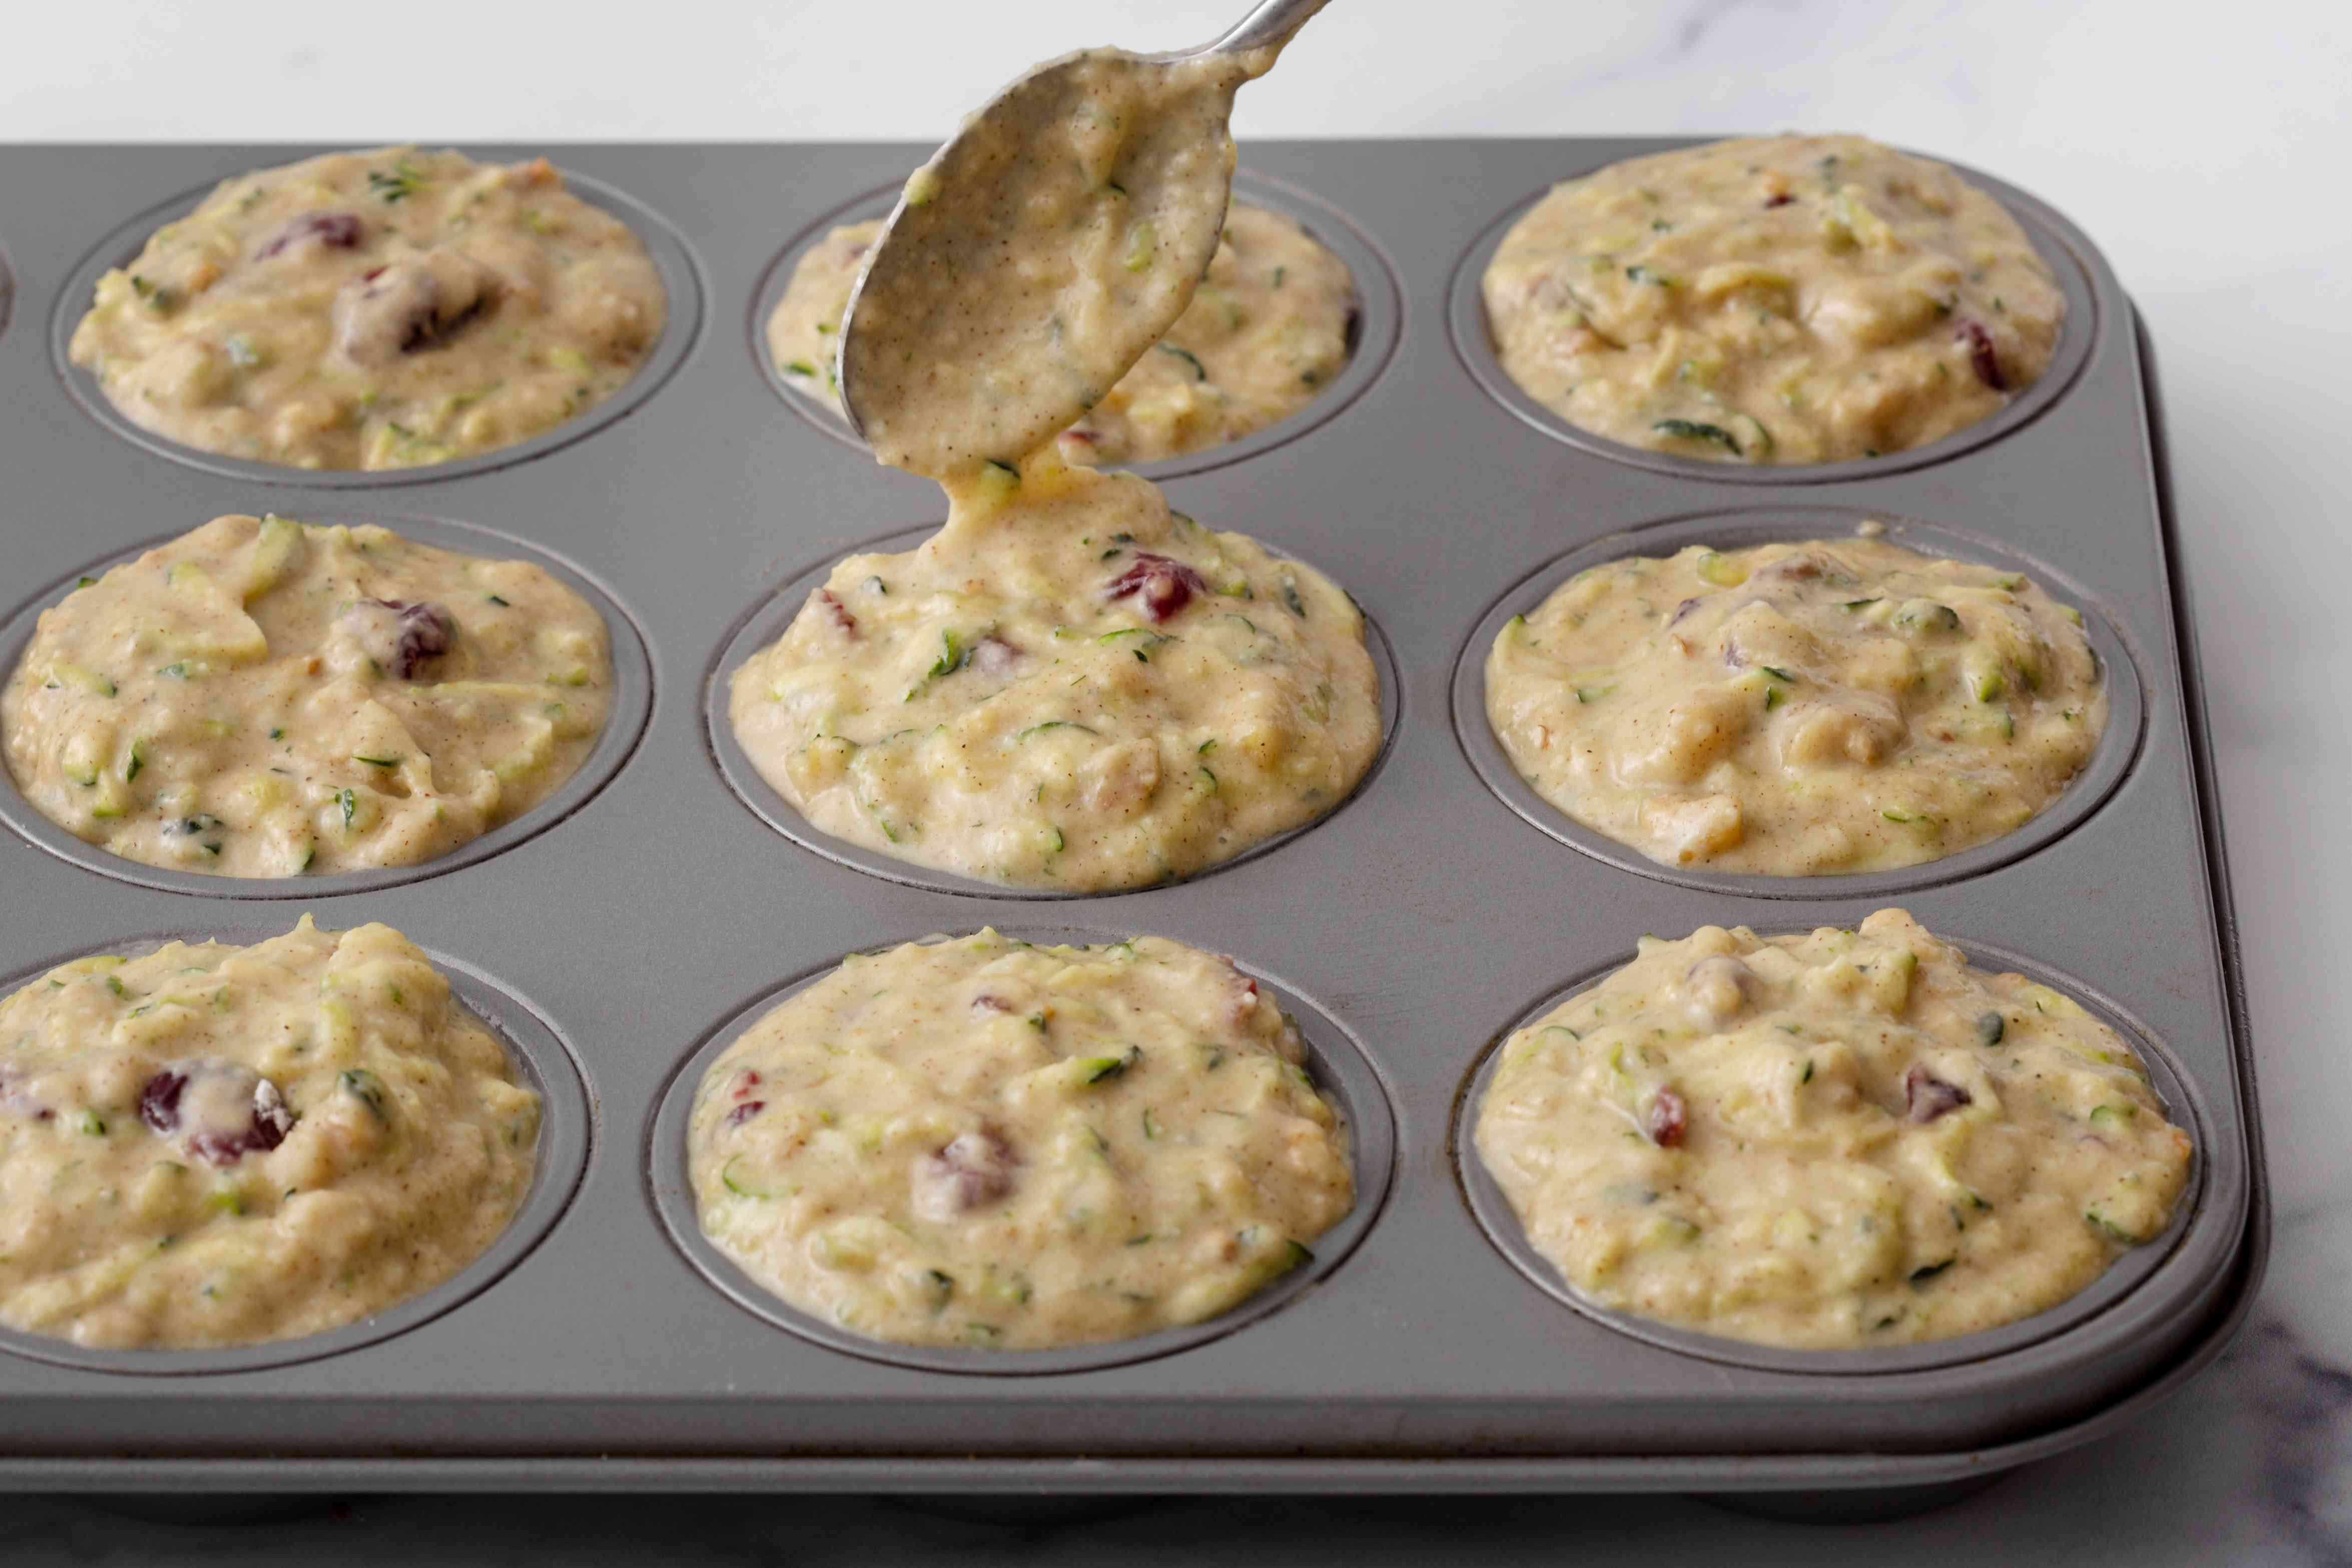 Spooning batter into a muffin tin to make a zucchini muffin recipe.